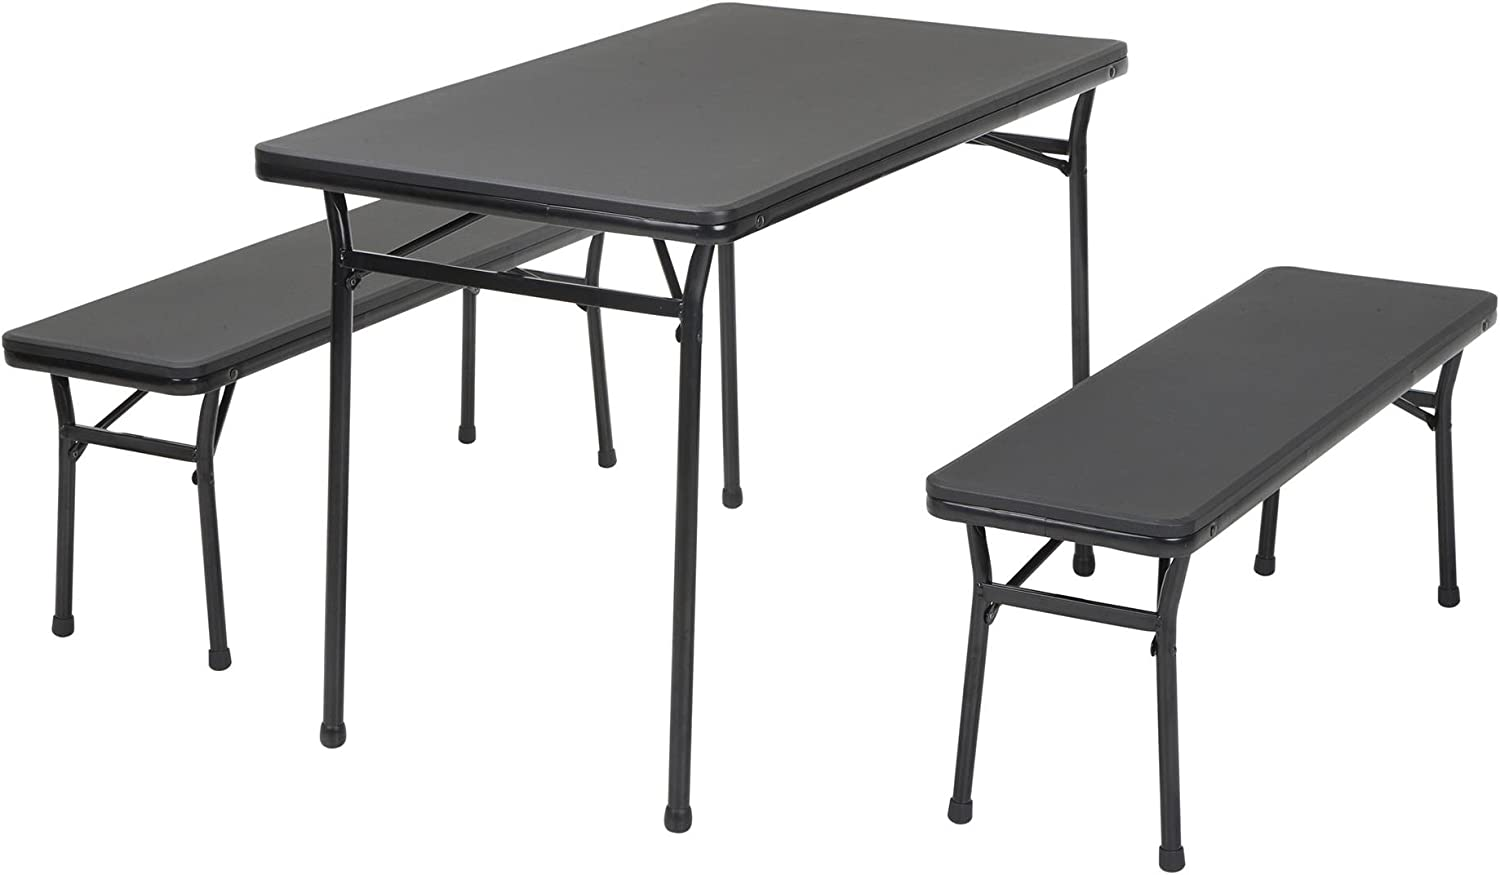 Cosco Products 37129RBK2E 18  x 26  Indoor Outdoor Adjustable Height Personal Folding Tailgate Table, Red, 2 Pack